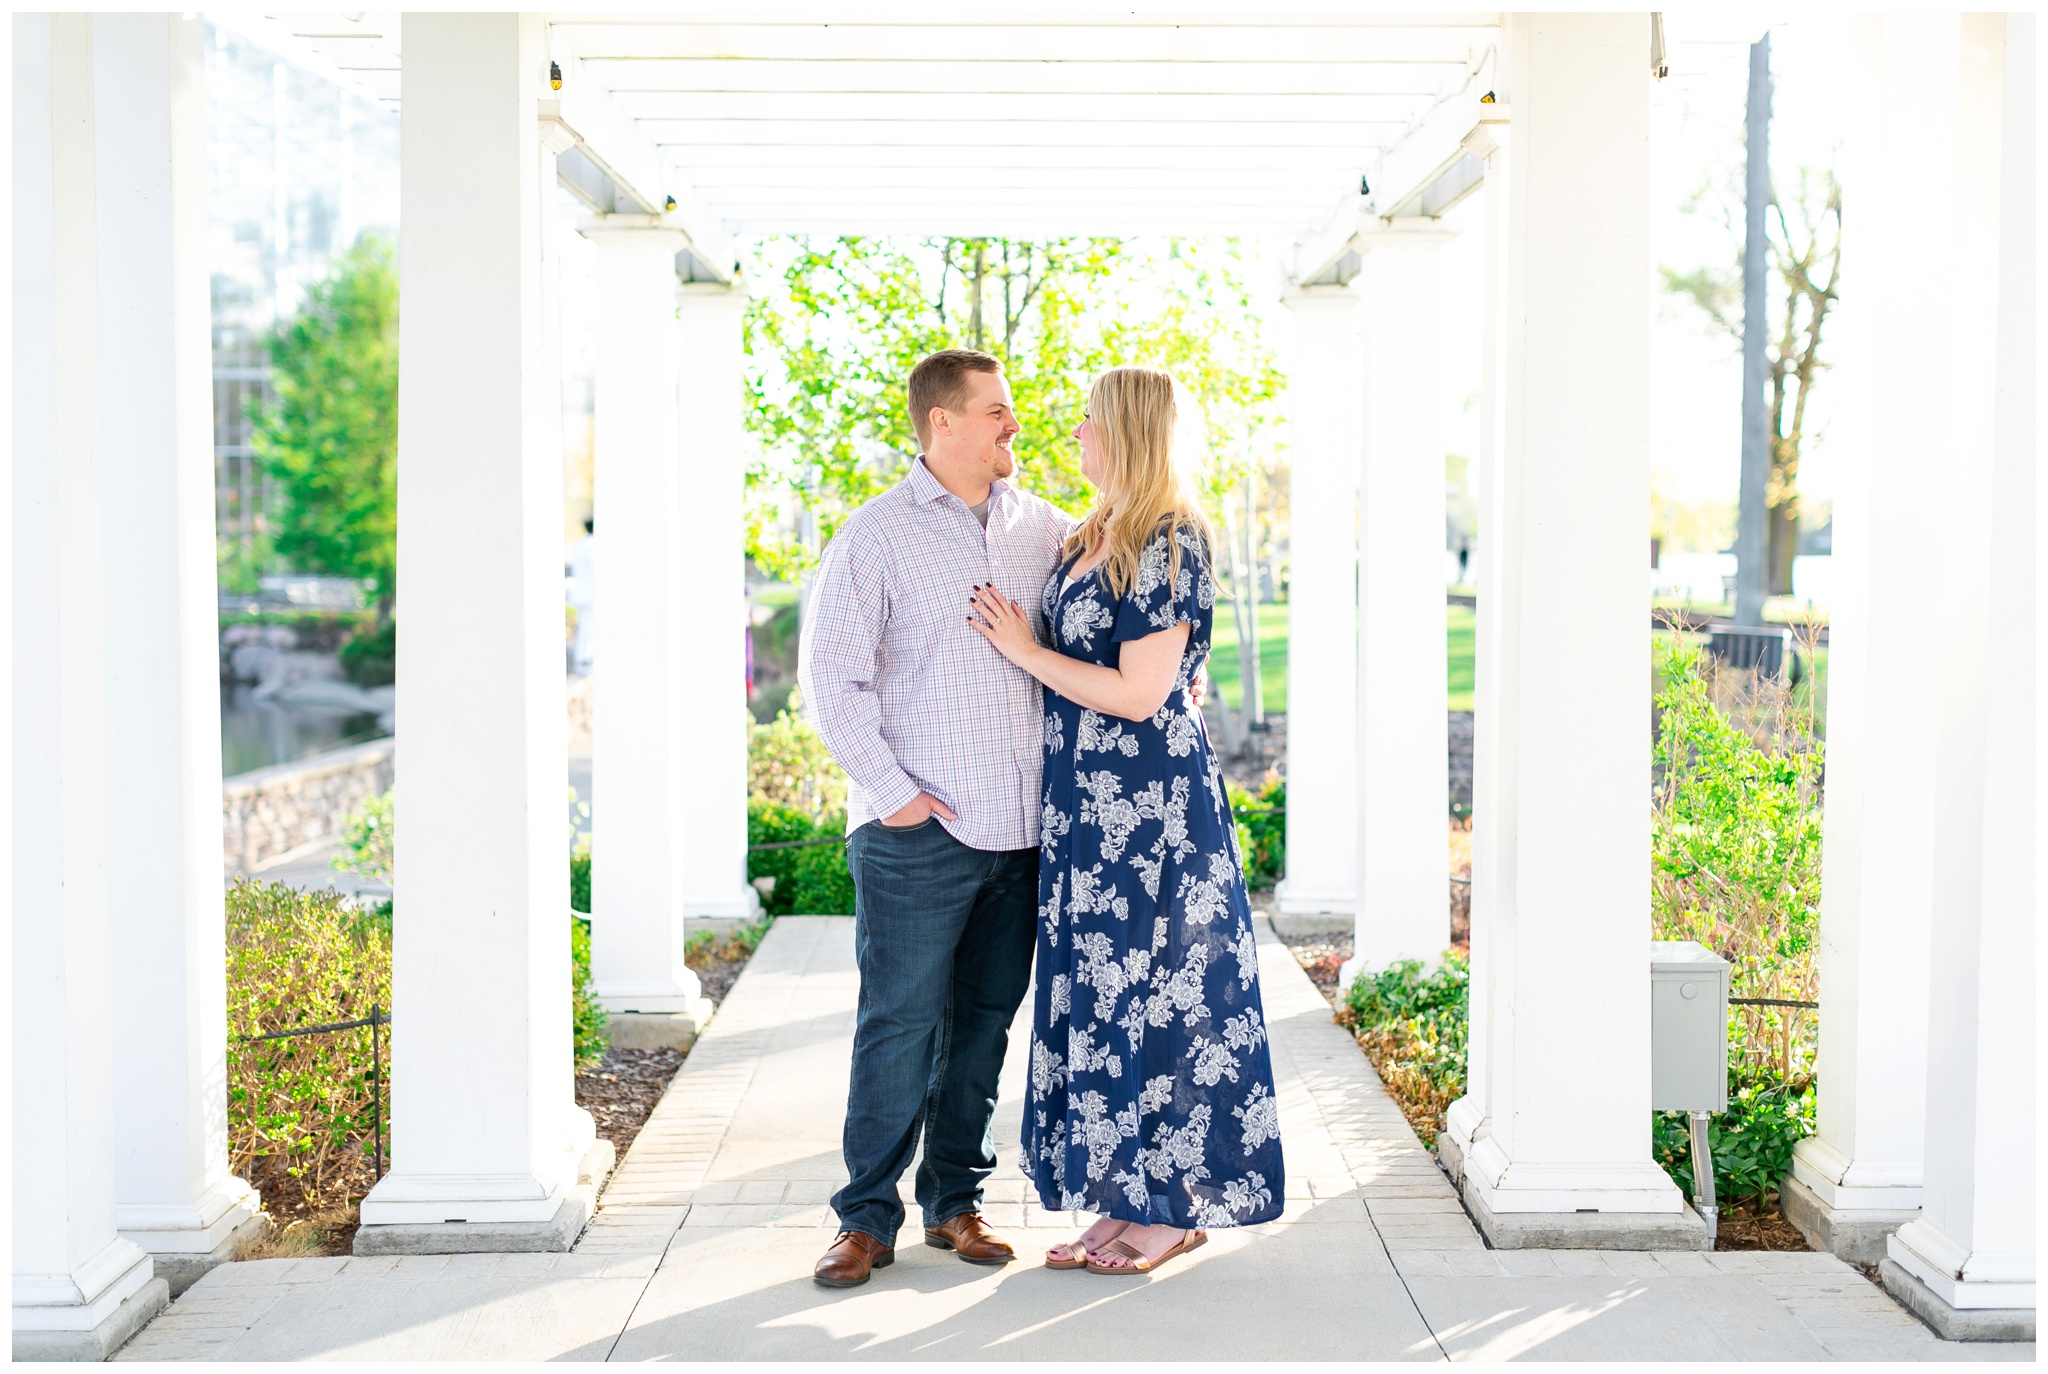 nicholas_conservatory_engagement_session_rockford_illinois_caynay_photo_2984.jpg